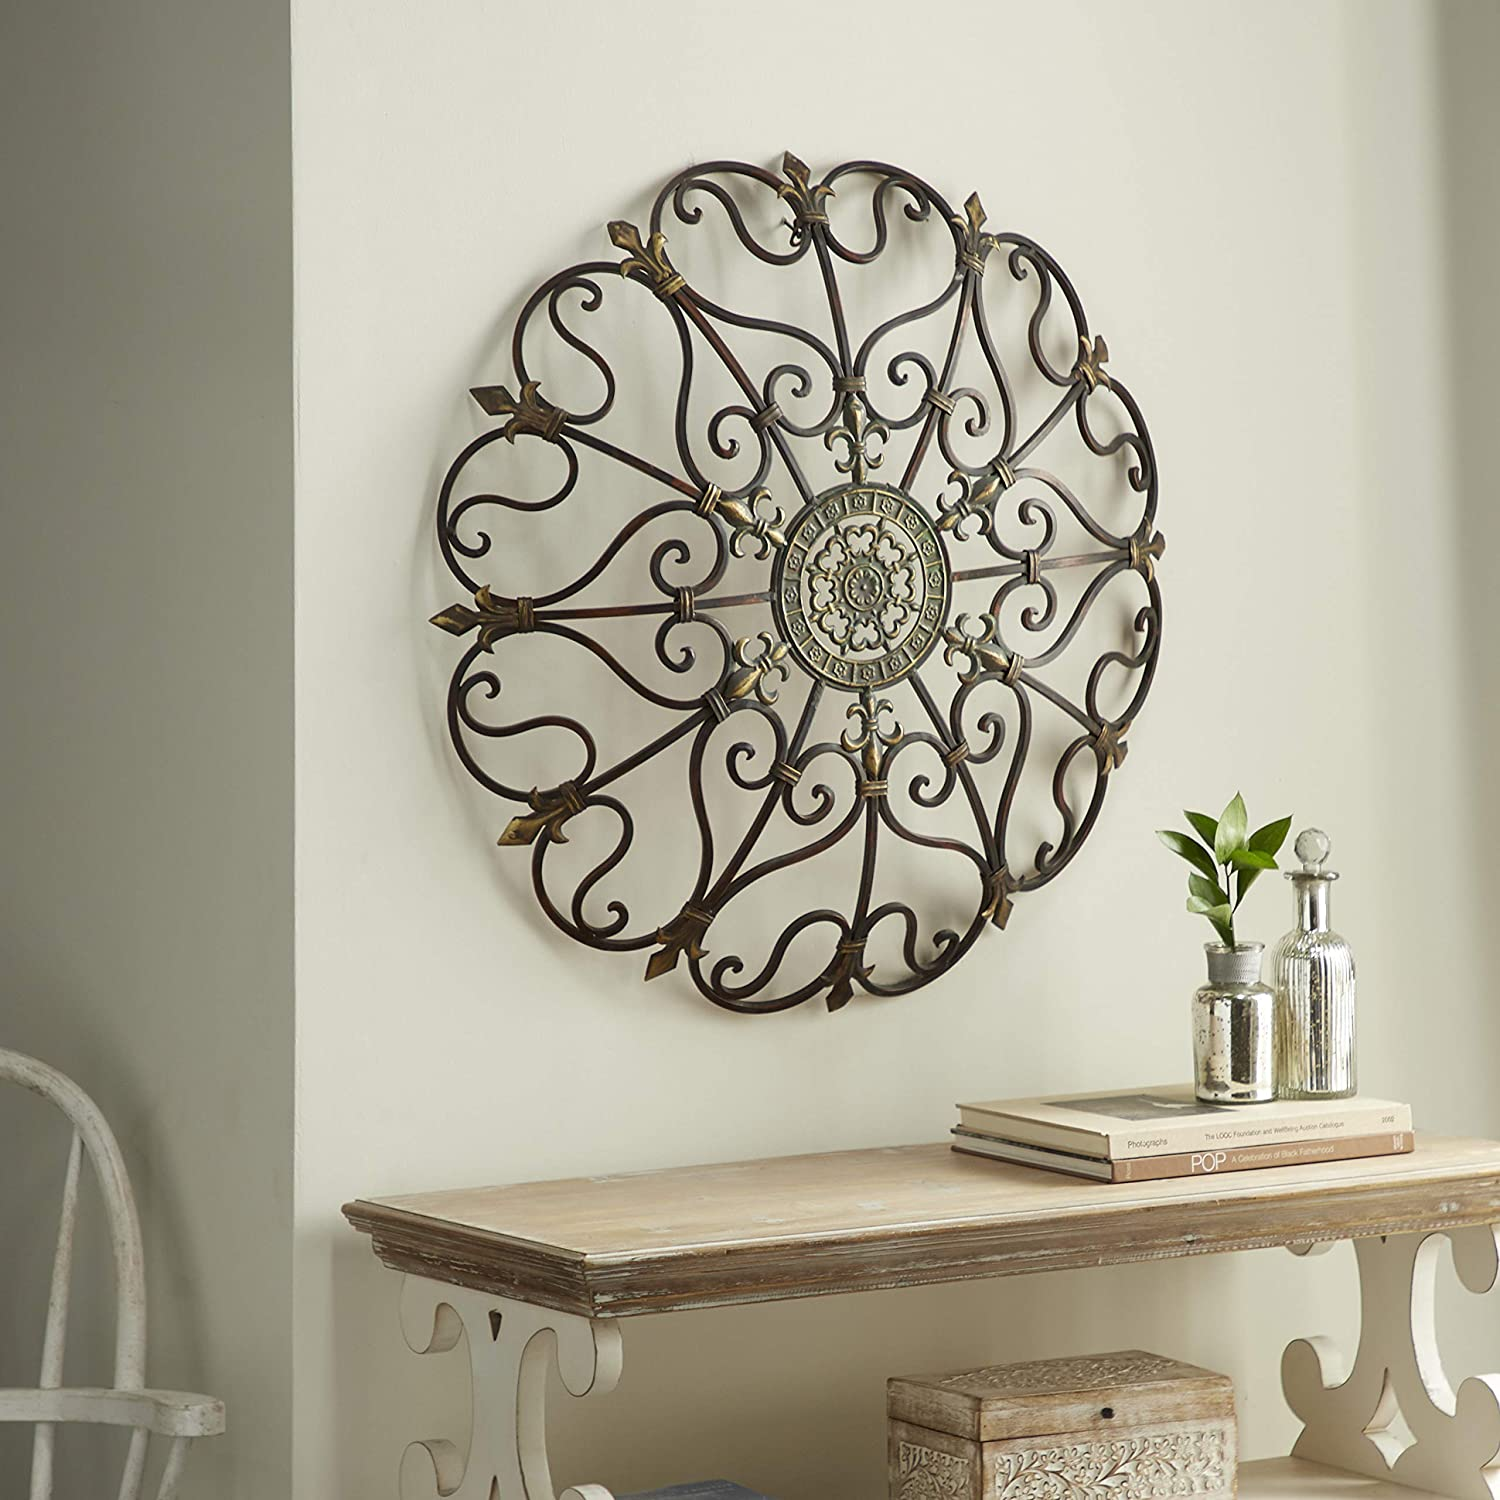 copper-and-gold-metal-wall-art